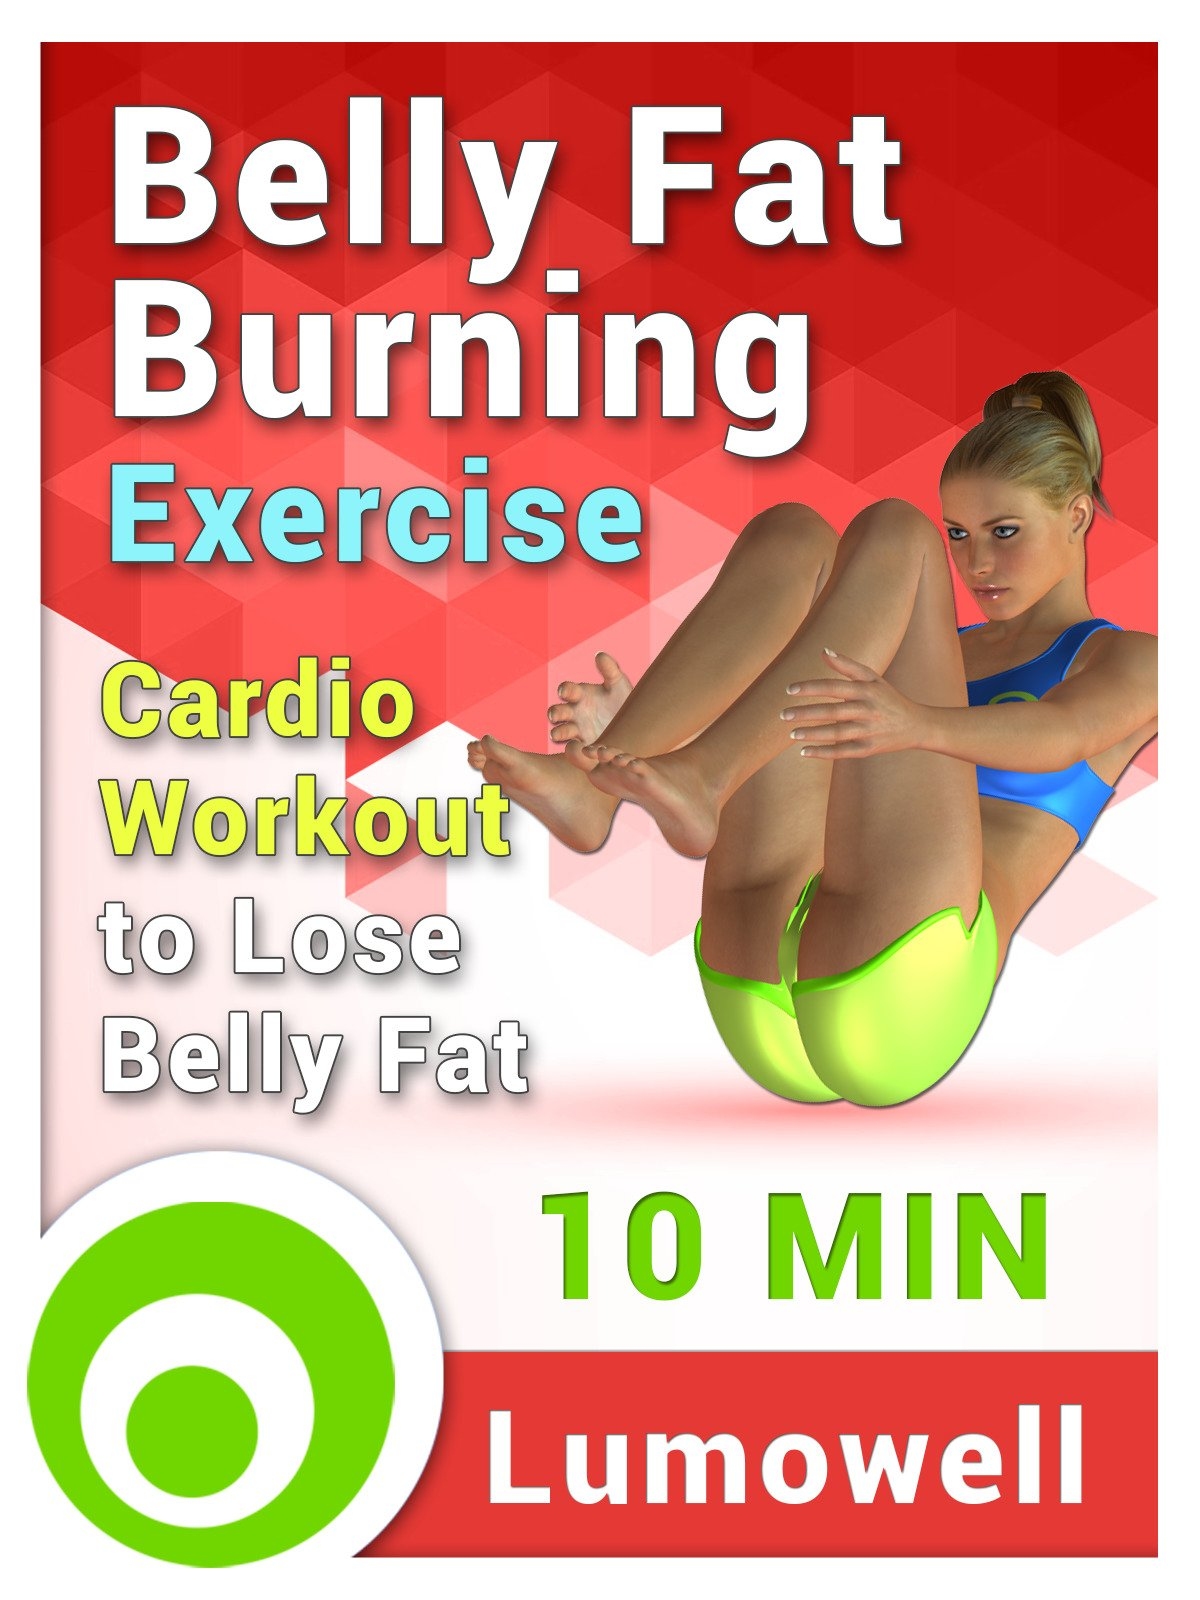 Belly Fat Burning Exercise: Cardio Workout to Lose Belly Fat